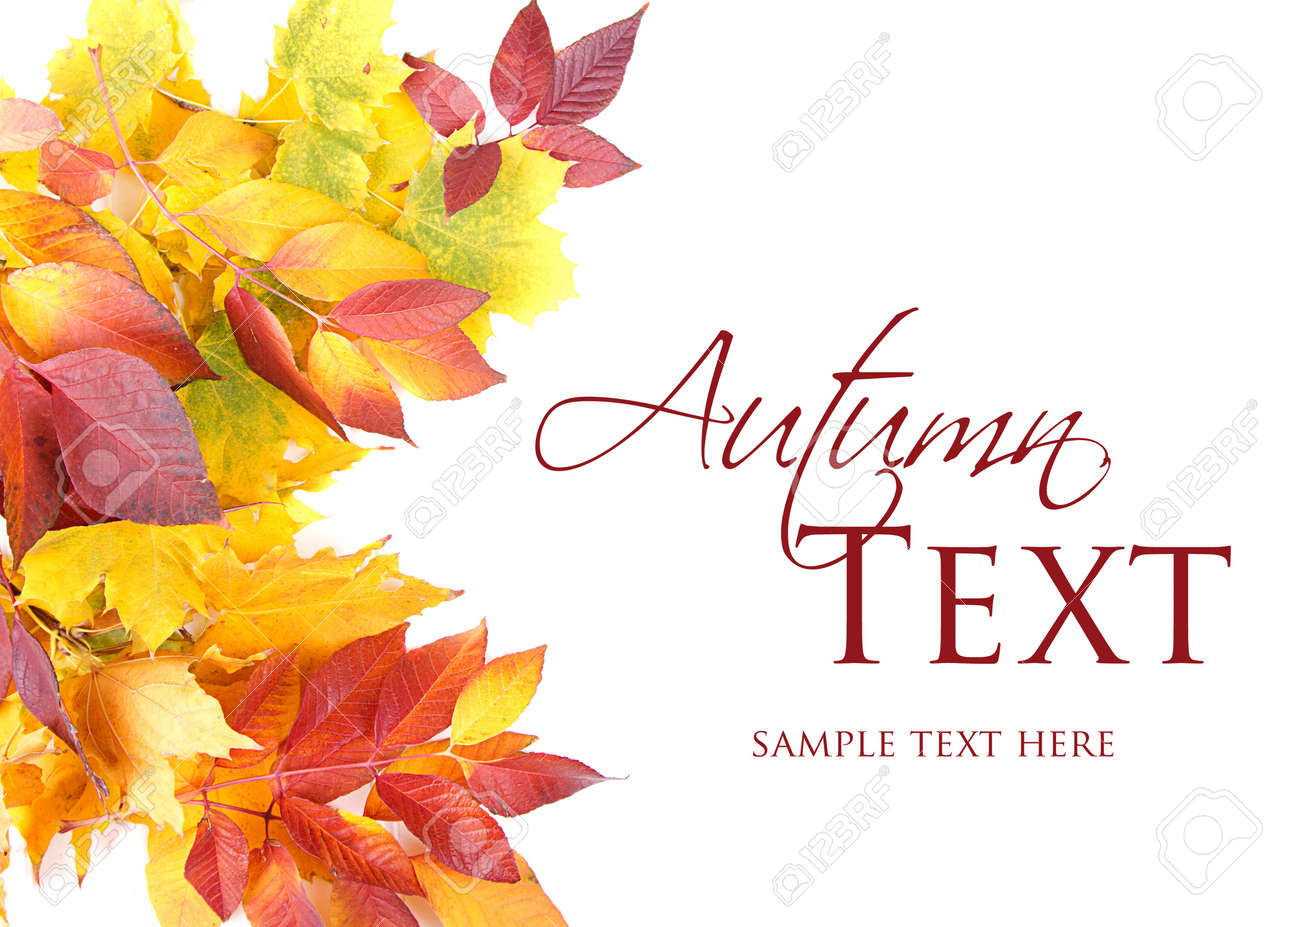 Autumn leaves red, green and yellow on white background Stock Photo - 16758192